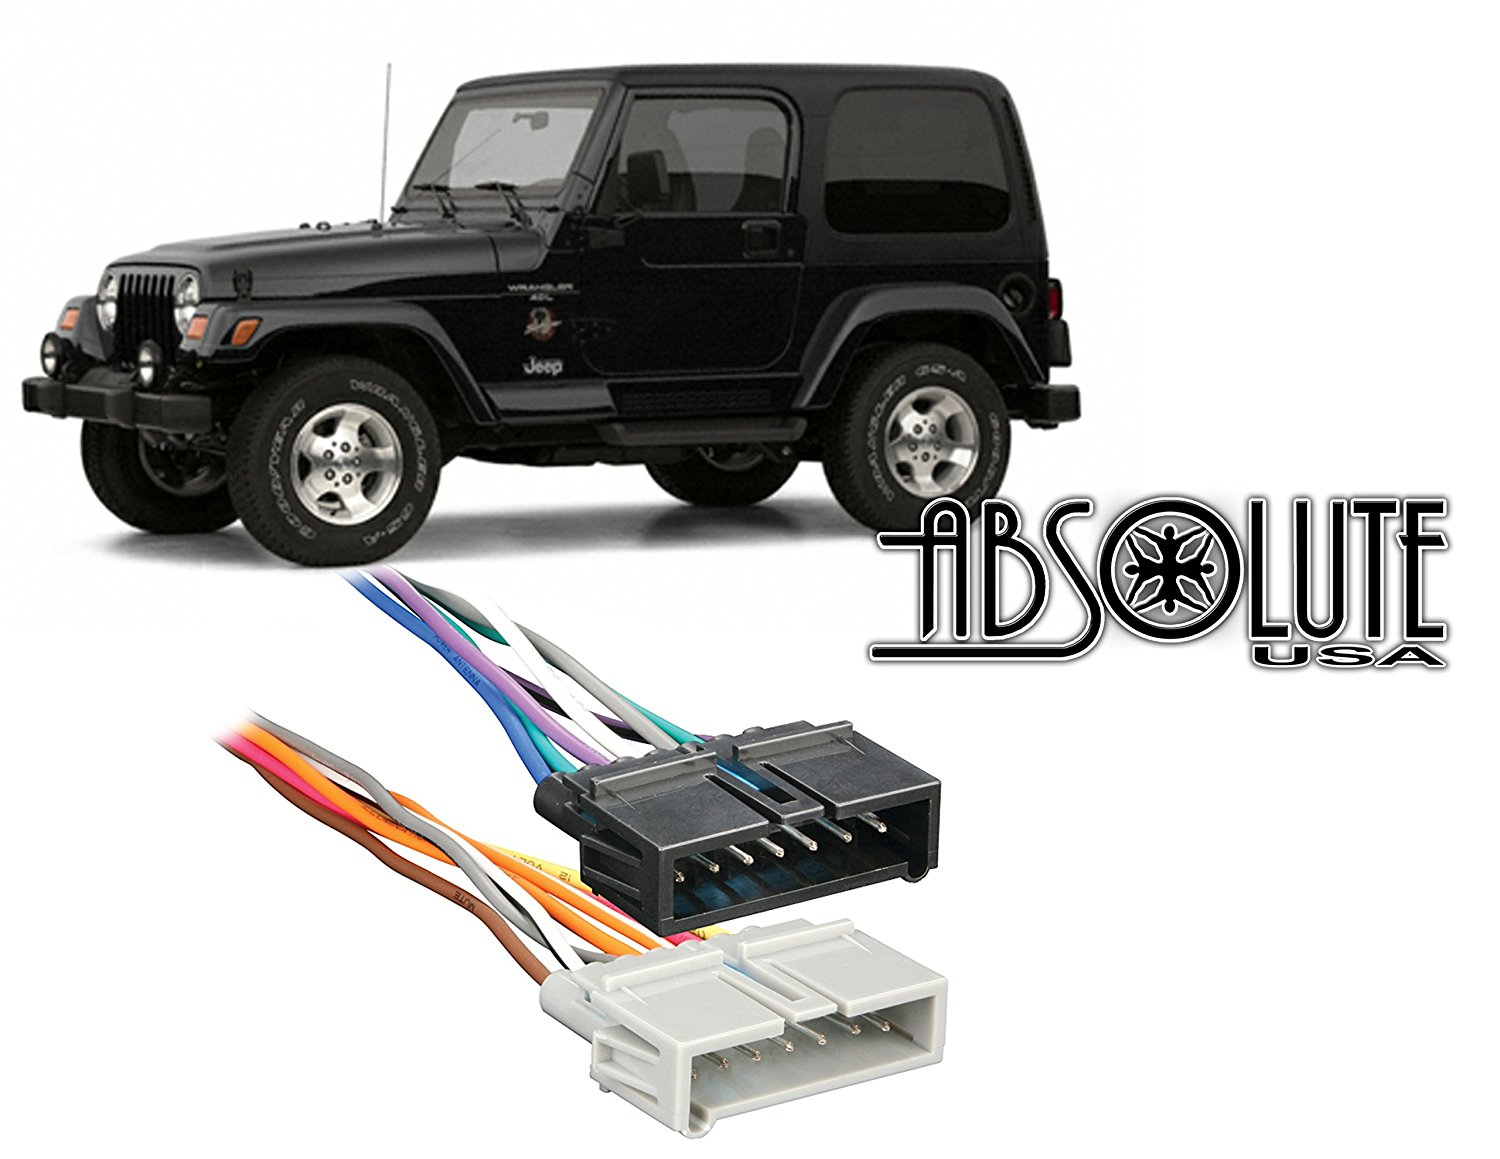 Aftermarket Double Din Radio Stereo Car Install Dash Kit Fits Jeep 02 Wrangler Wiring Harness 1997 2002 Custom Parts